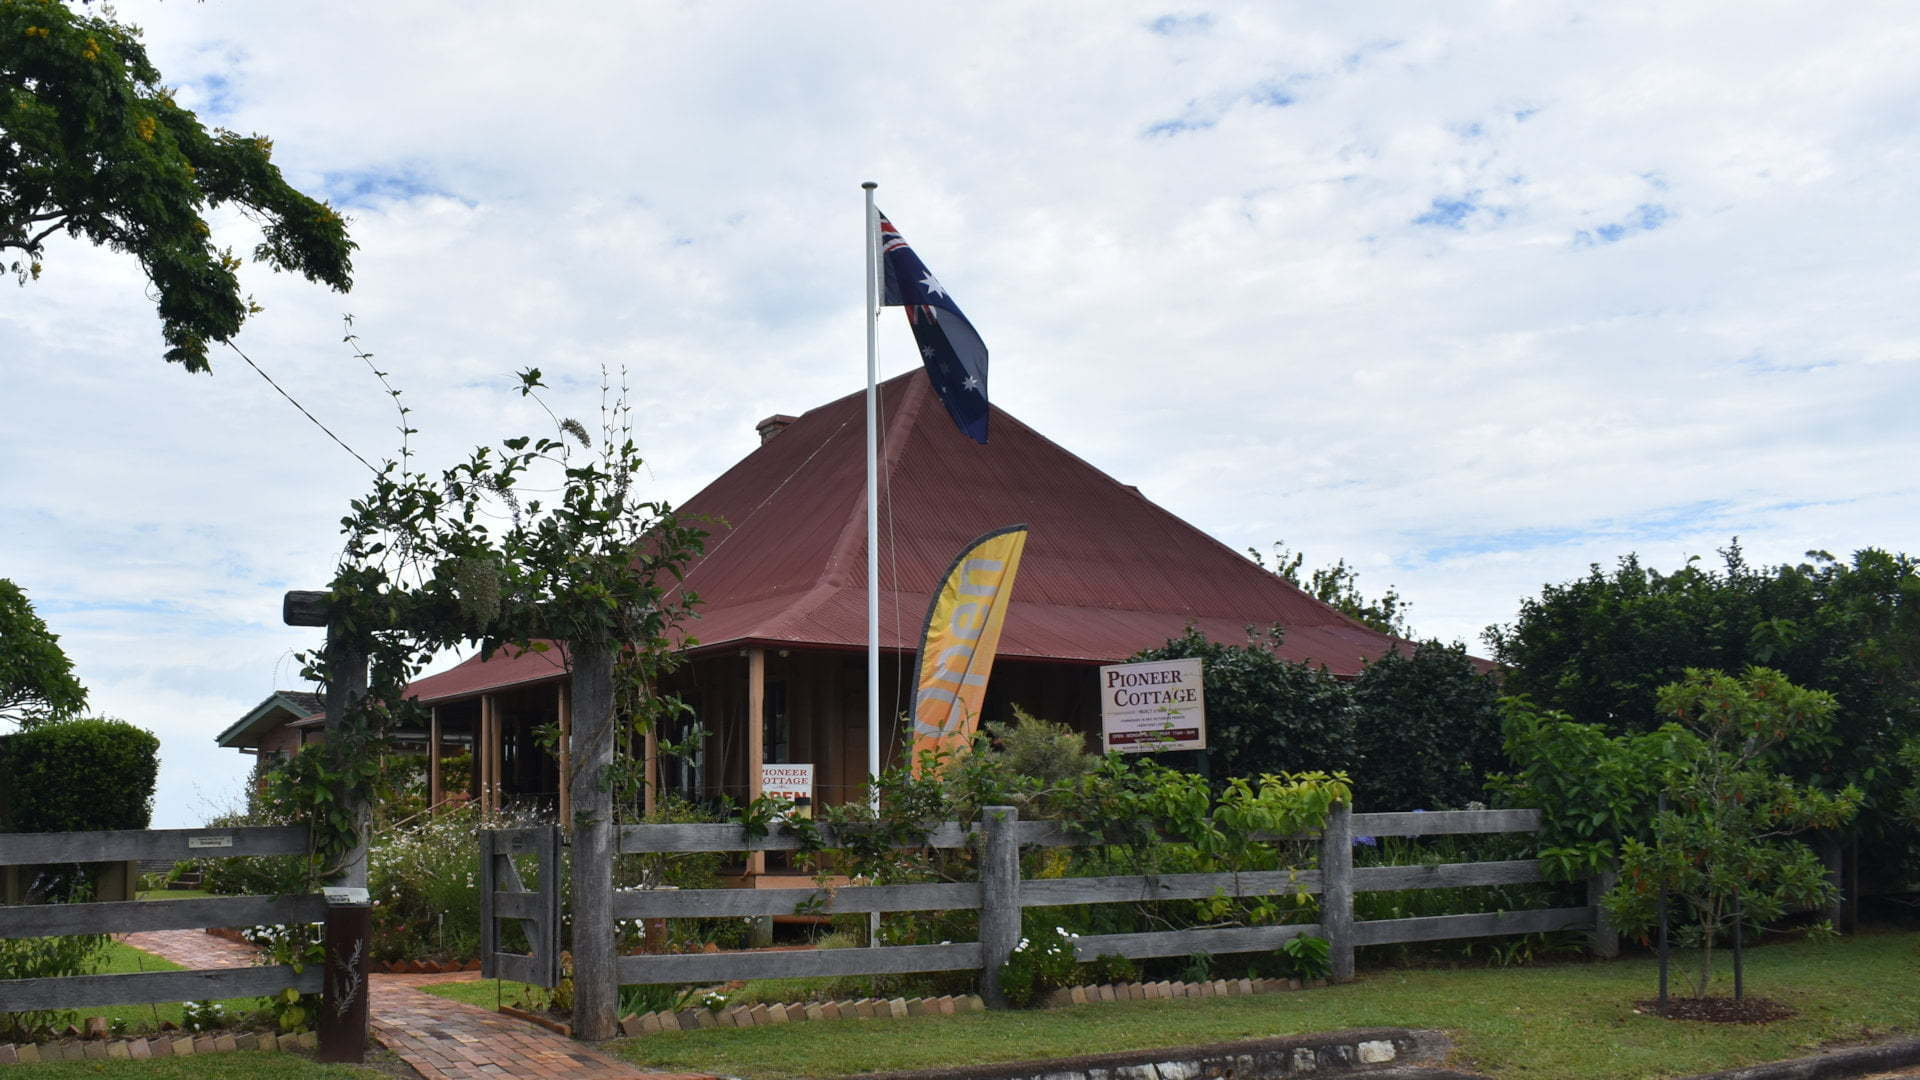 Buderim Pioneer Cottage, built around 1882 and restored since the 1960s